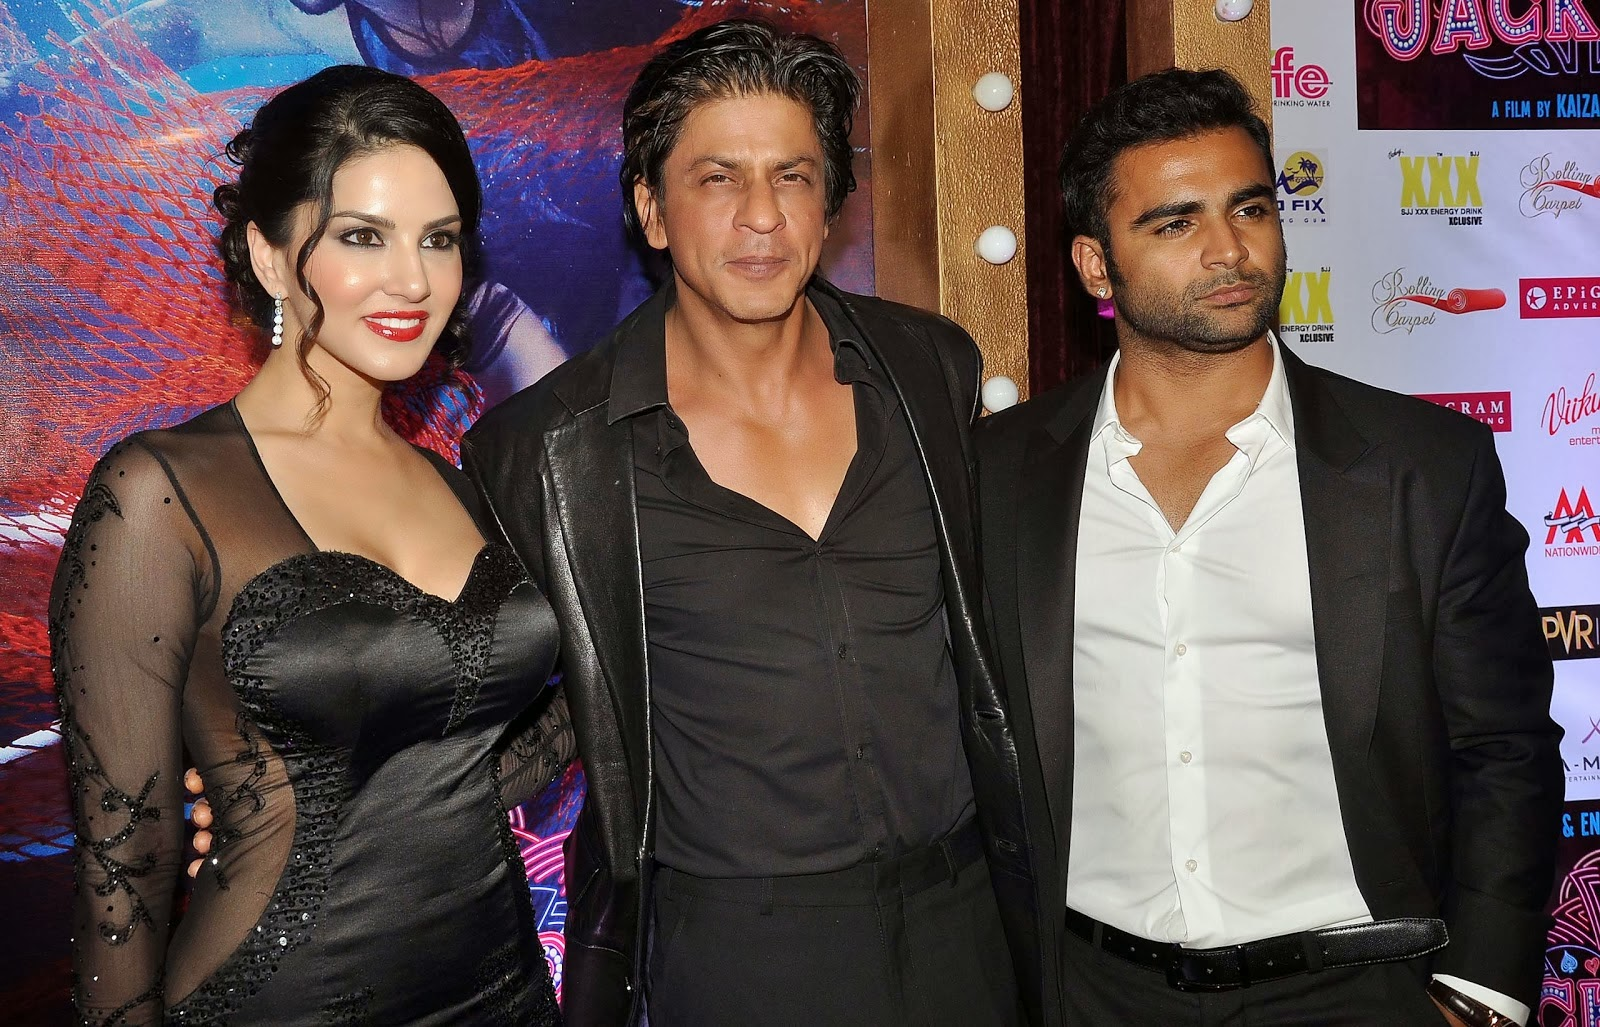 Pictures of Sunny Leone with SRK